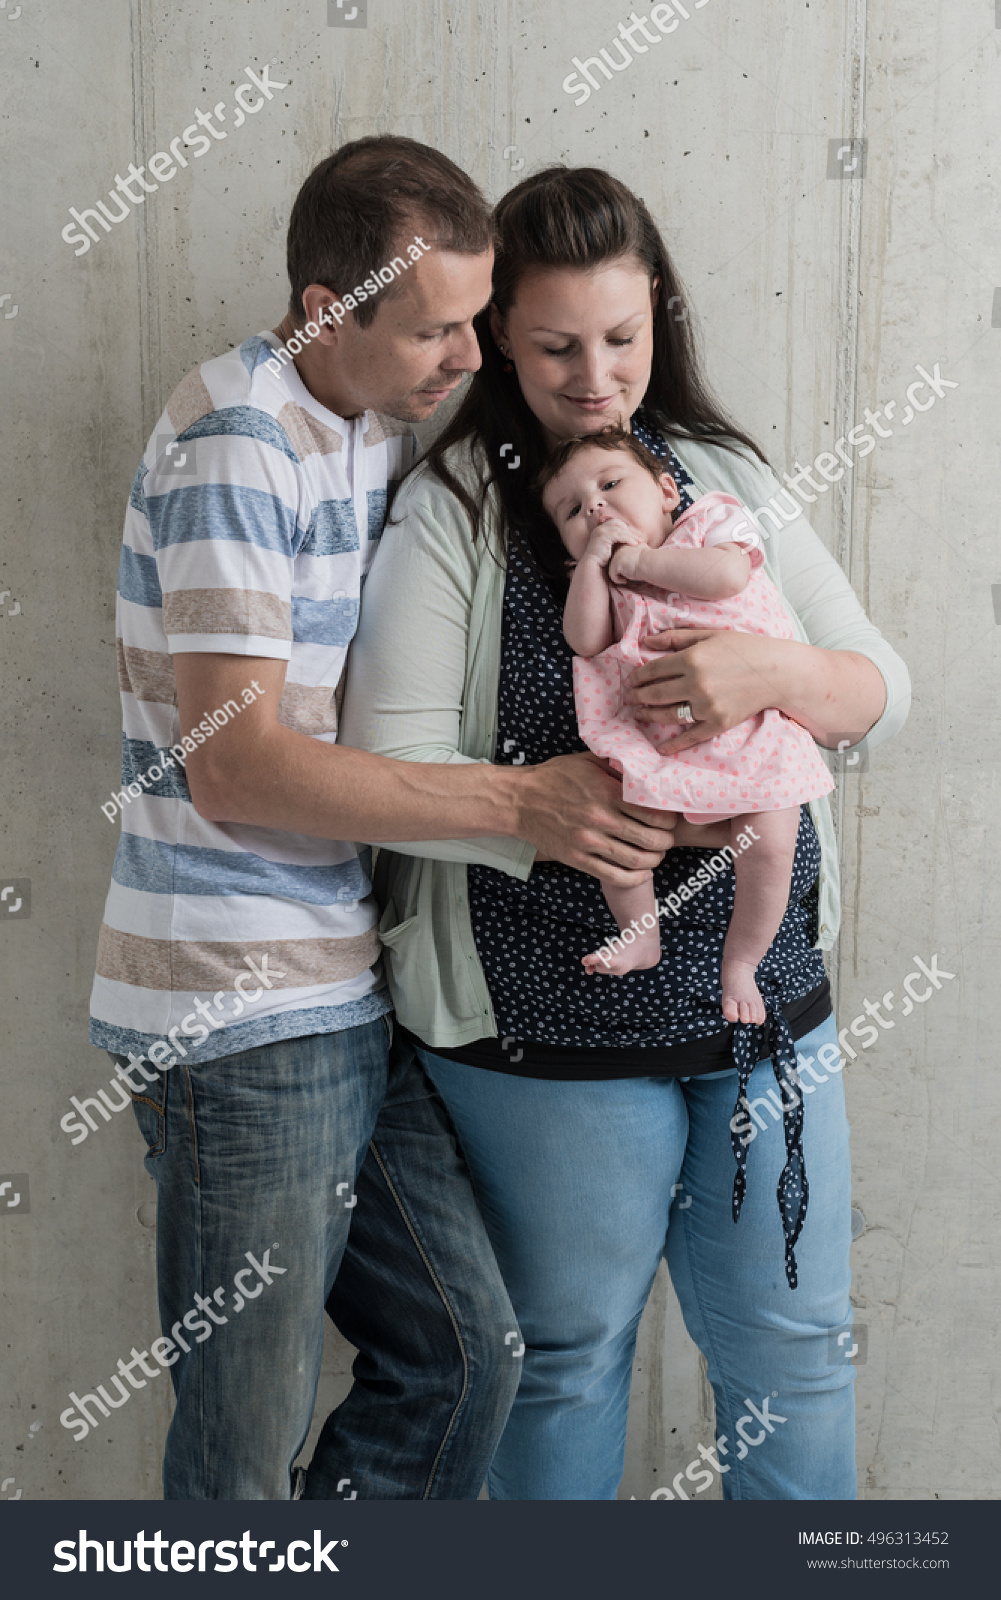 Baby shooting newborn family together